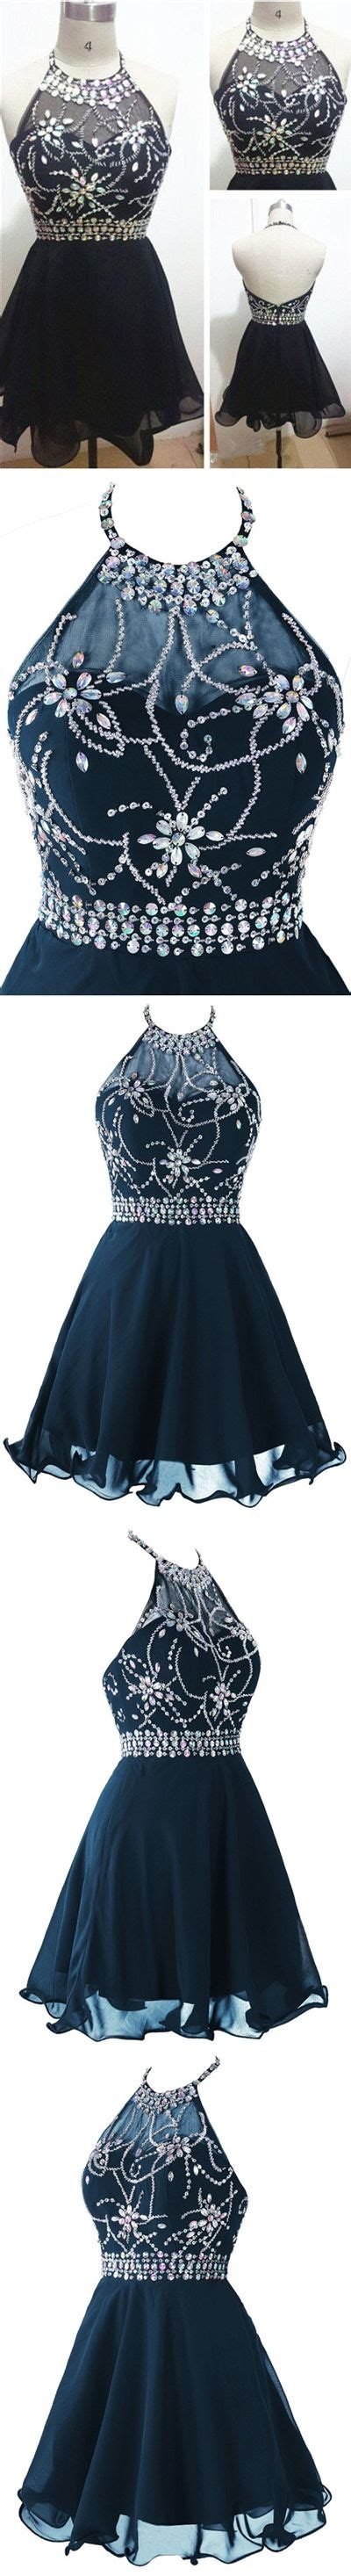 Dress To Give 40370 top 25 best black hairstyles ideas on